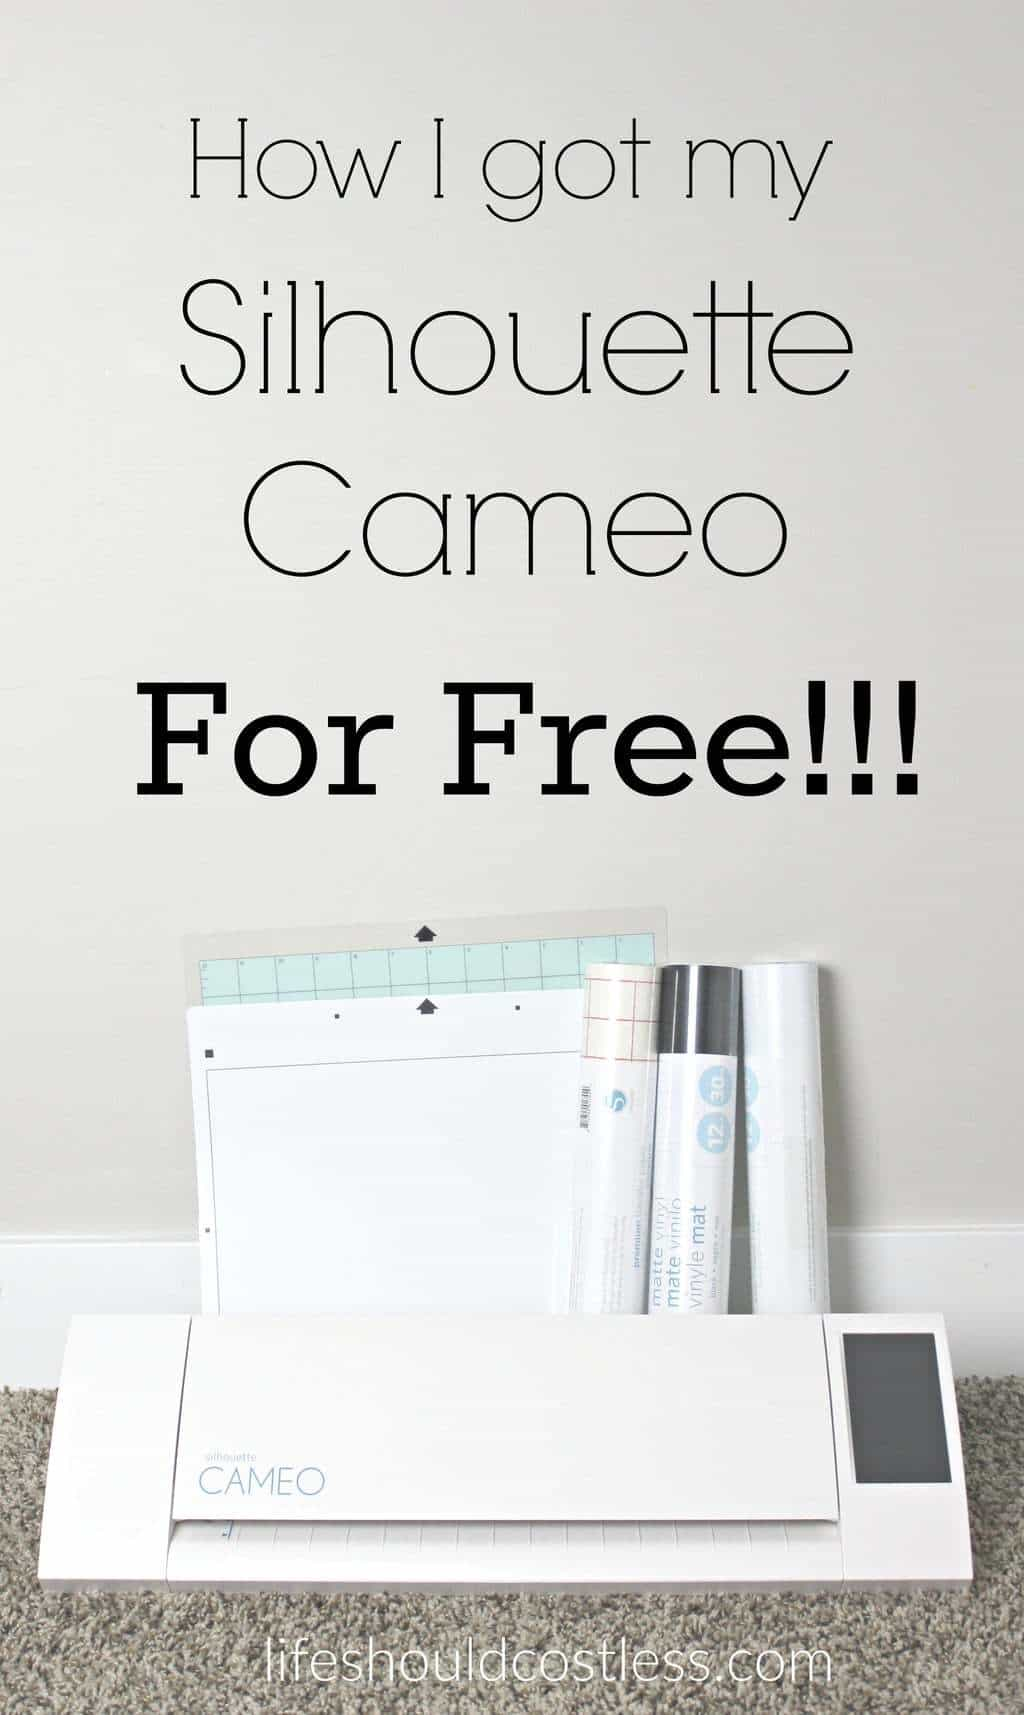 How I got my Silhouette Cameo for free!!! See post to learn how. lifeshouldcostles.... Free vinyl cutter. Best silhouette cameo pins.